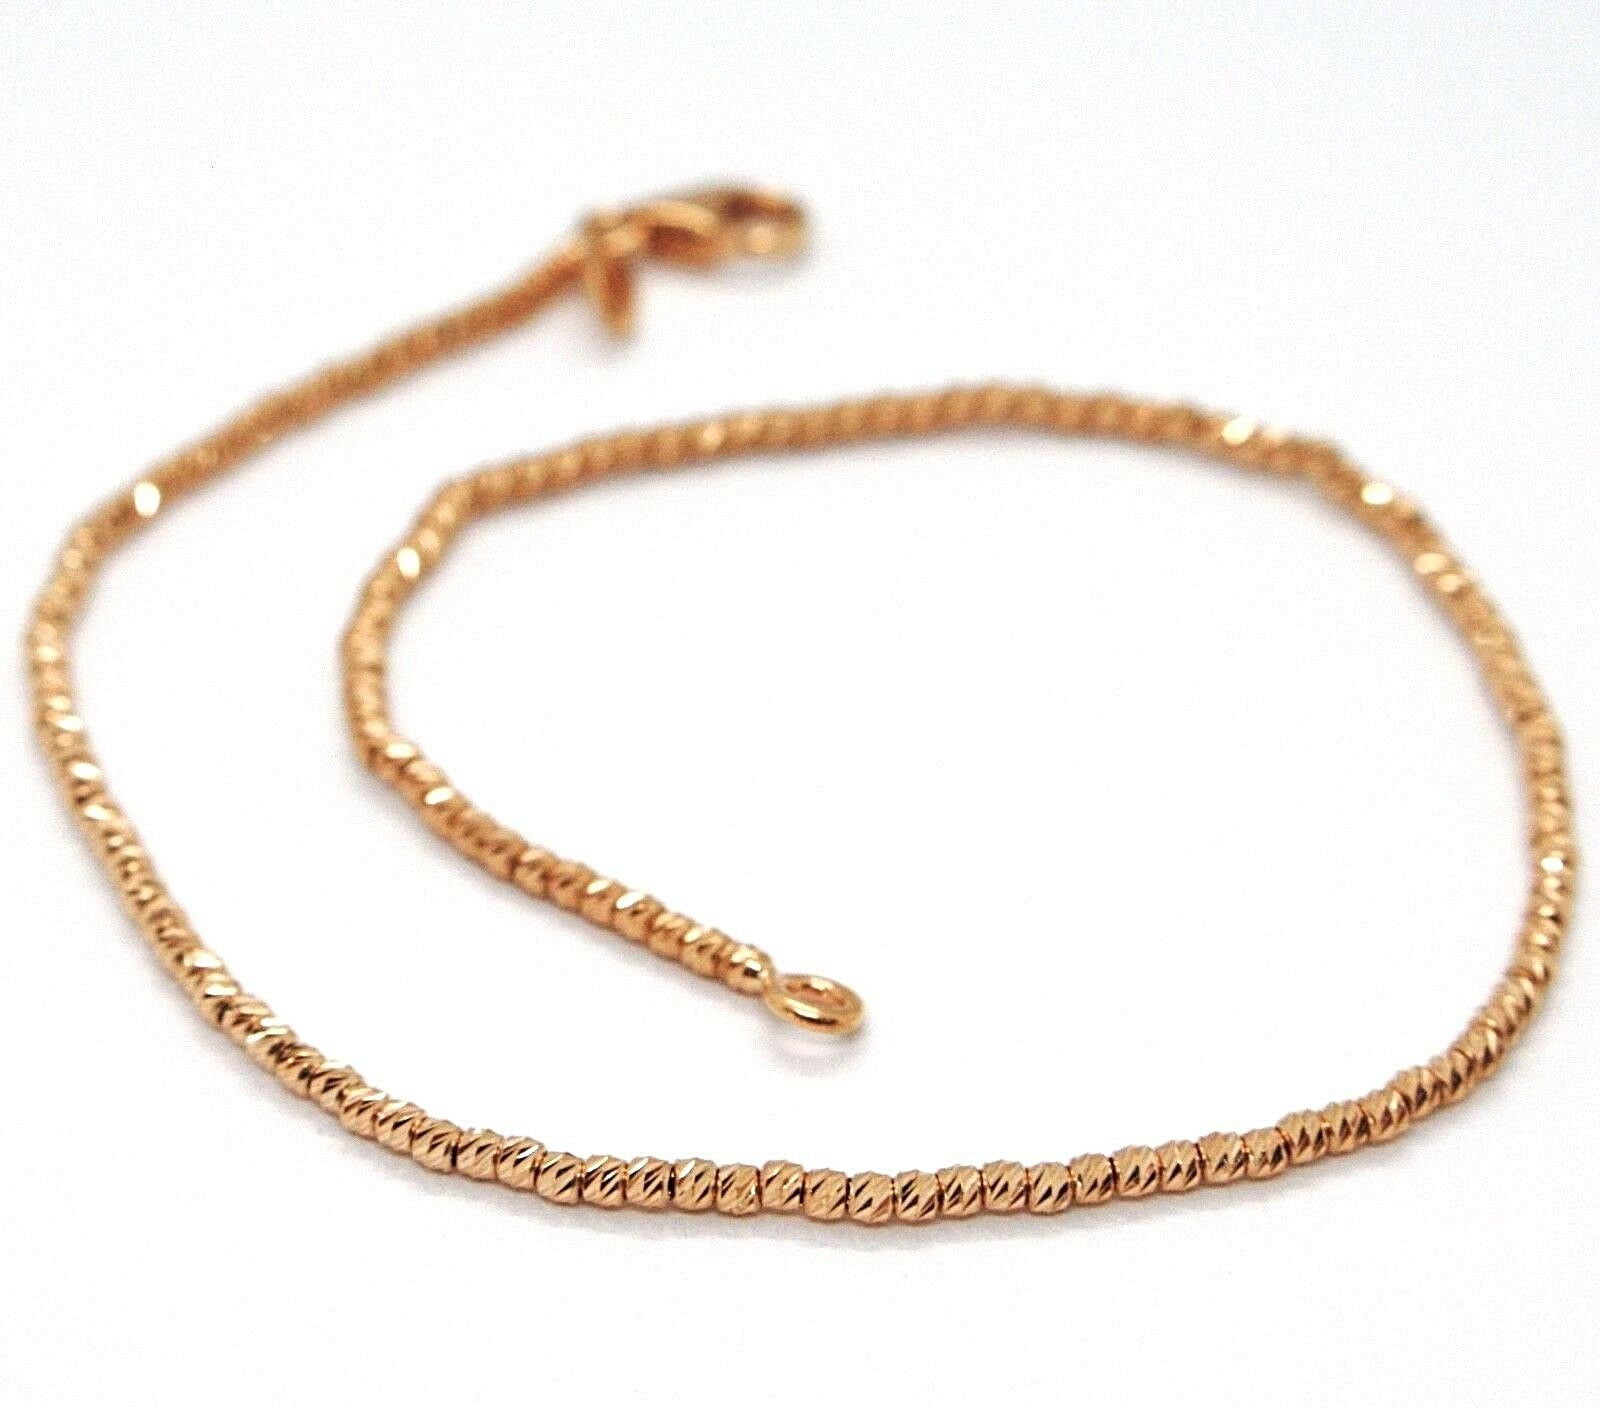 18K ROSE GOLD BRACELET WITH FINELY WORKED SPHERES, 1.5 MM DIAMOND CUT BALLS